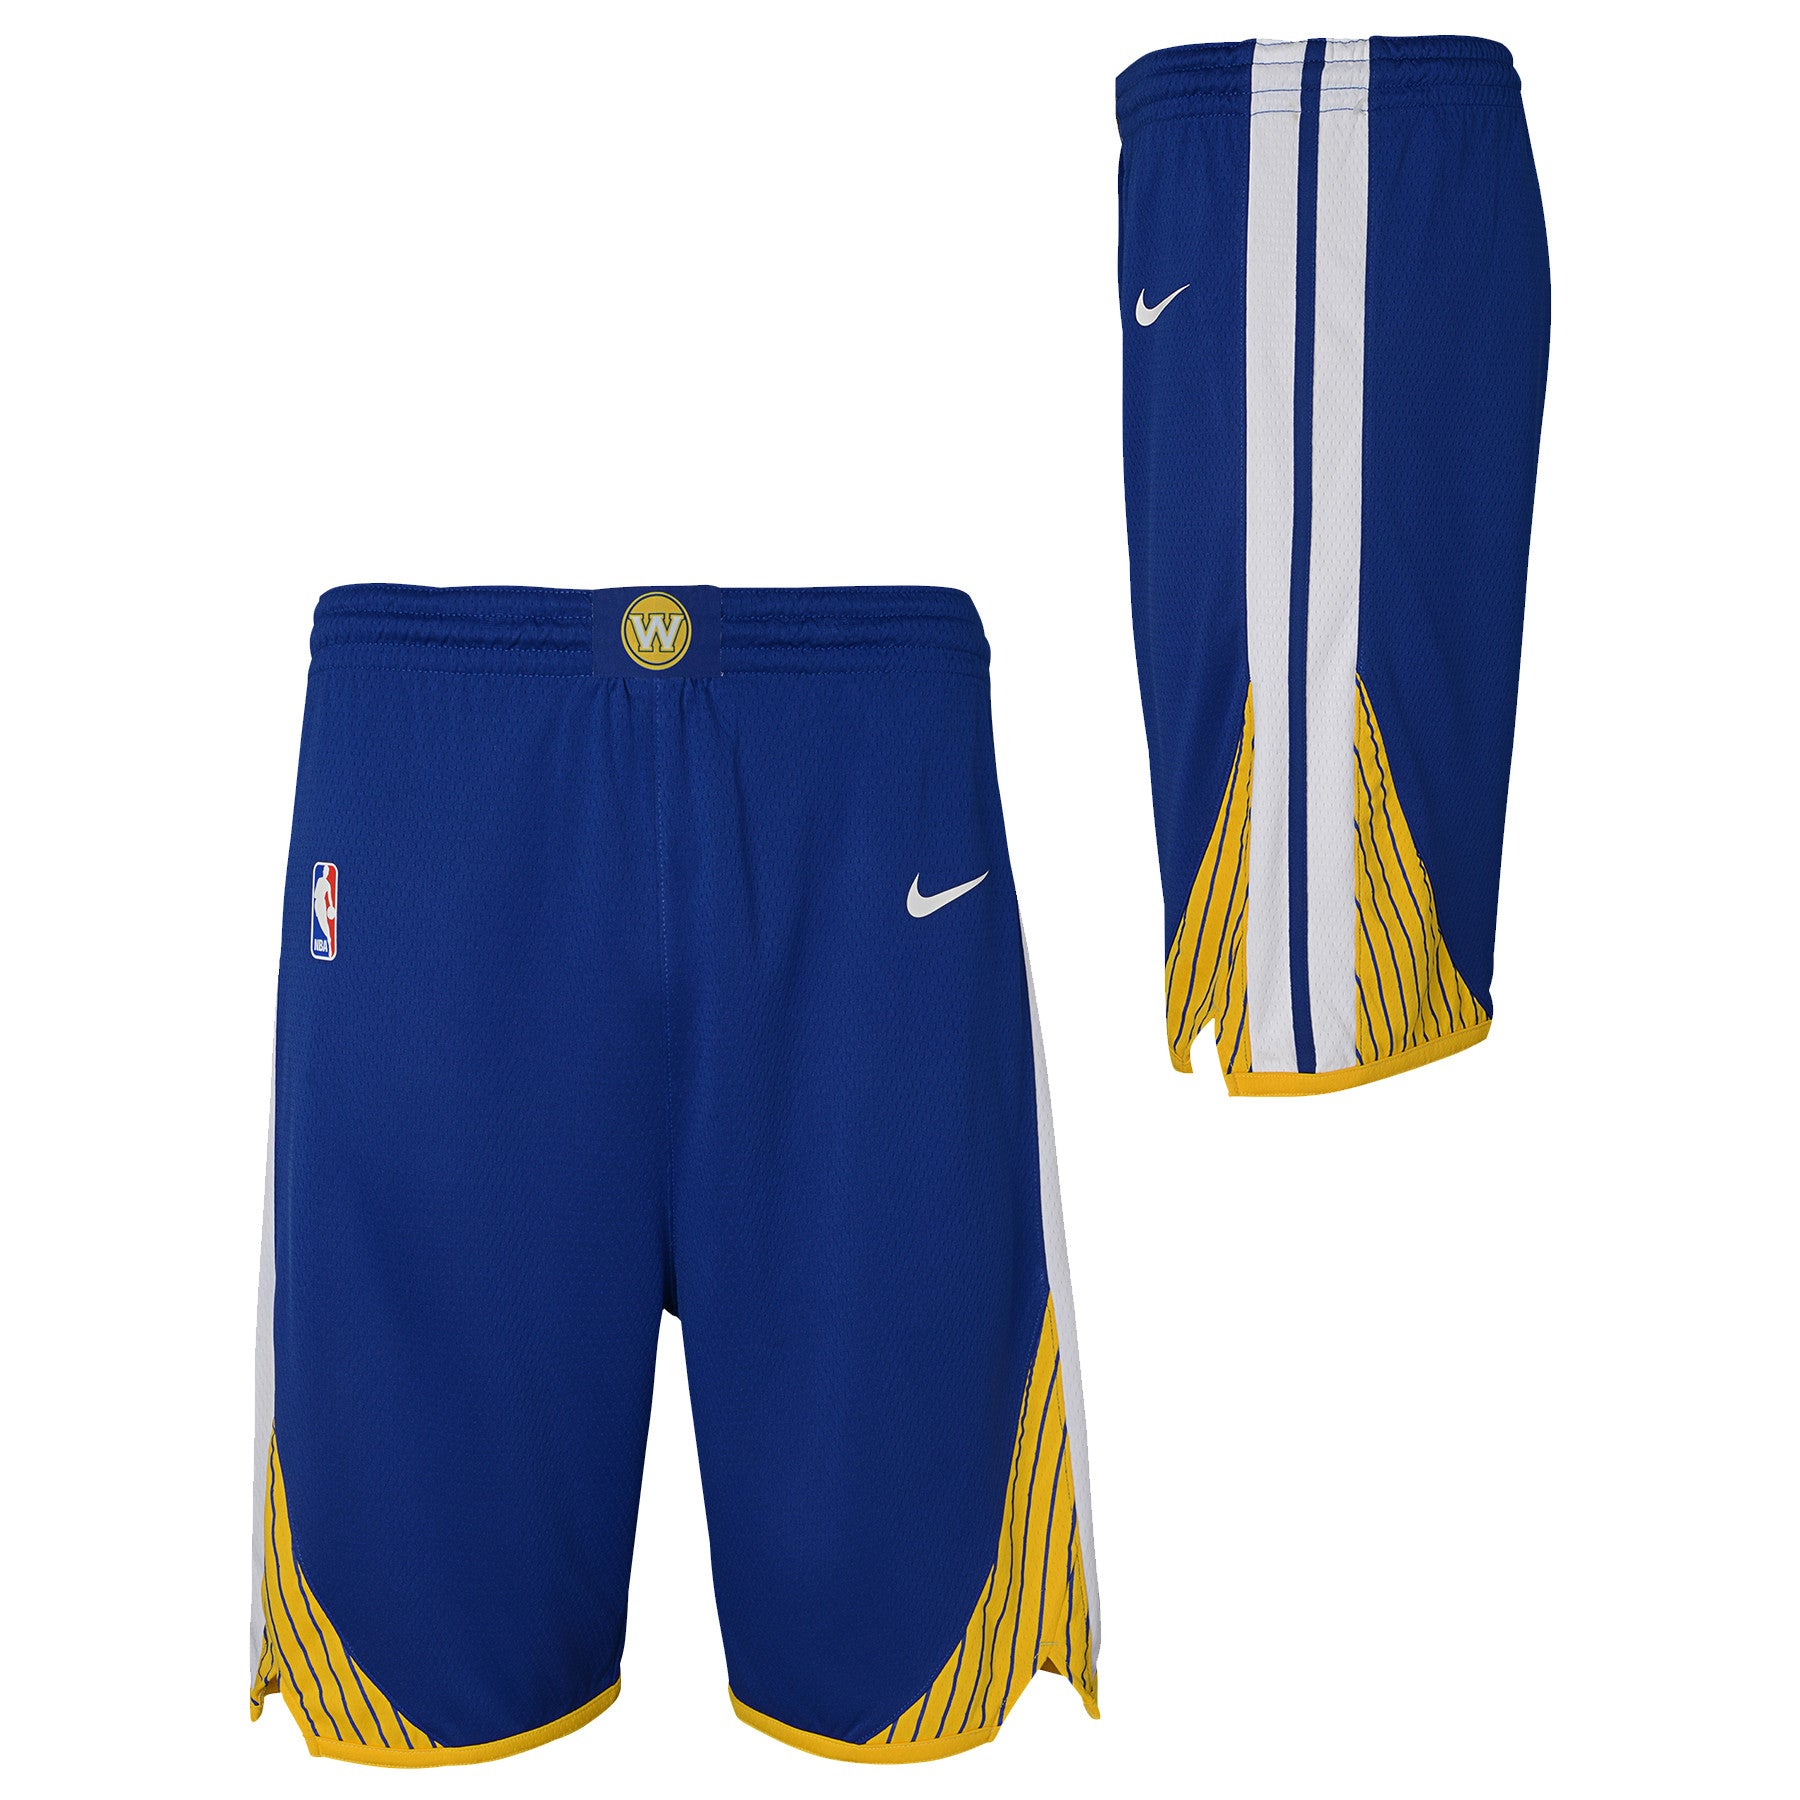 best service bee74 1f3e7 GOLDEN STATE WARRIORS NIKE NBA ICON EDITION YOUTH BLUE SWINGMAN SHORTS -  Basketball Jersey World